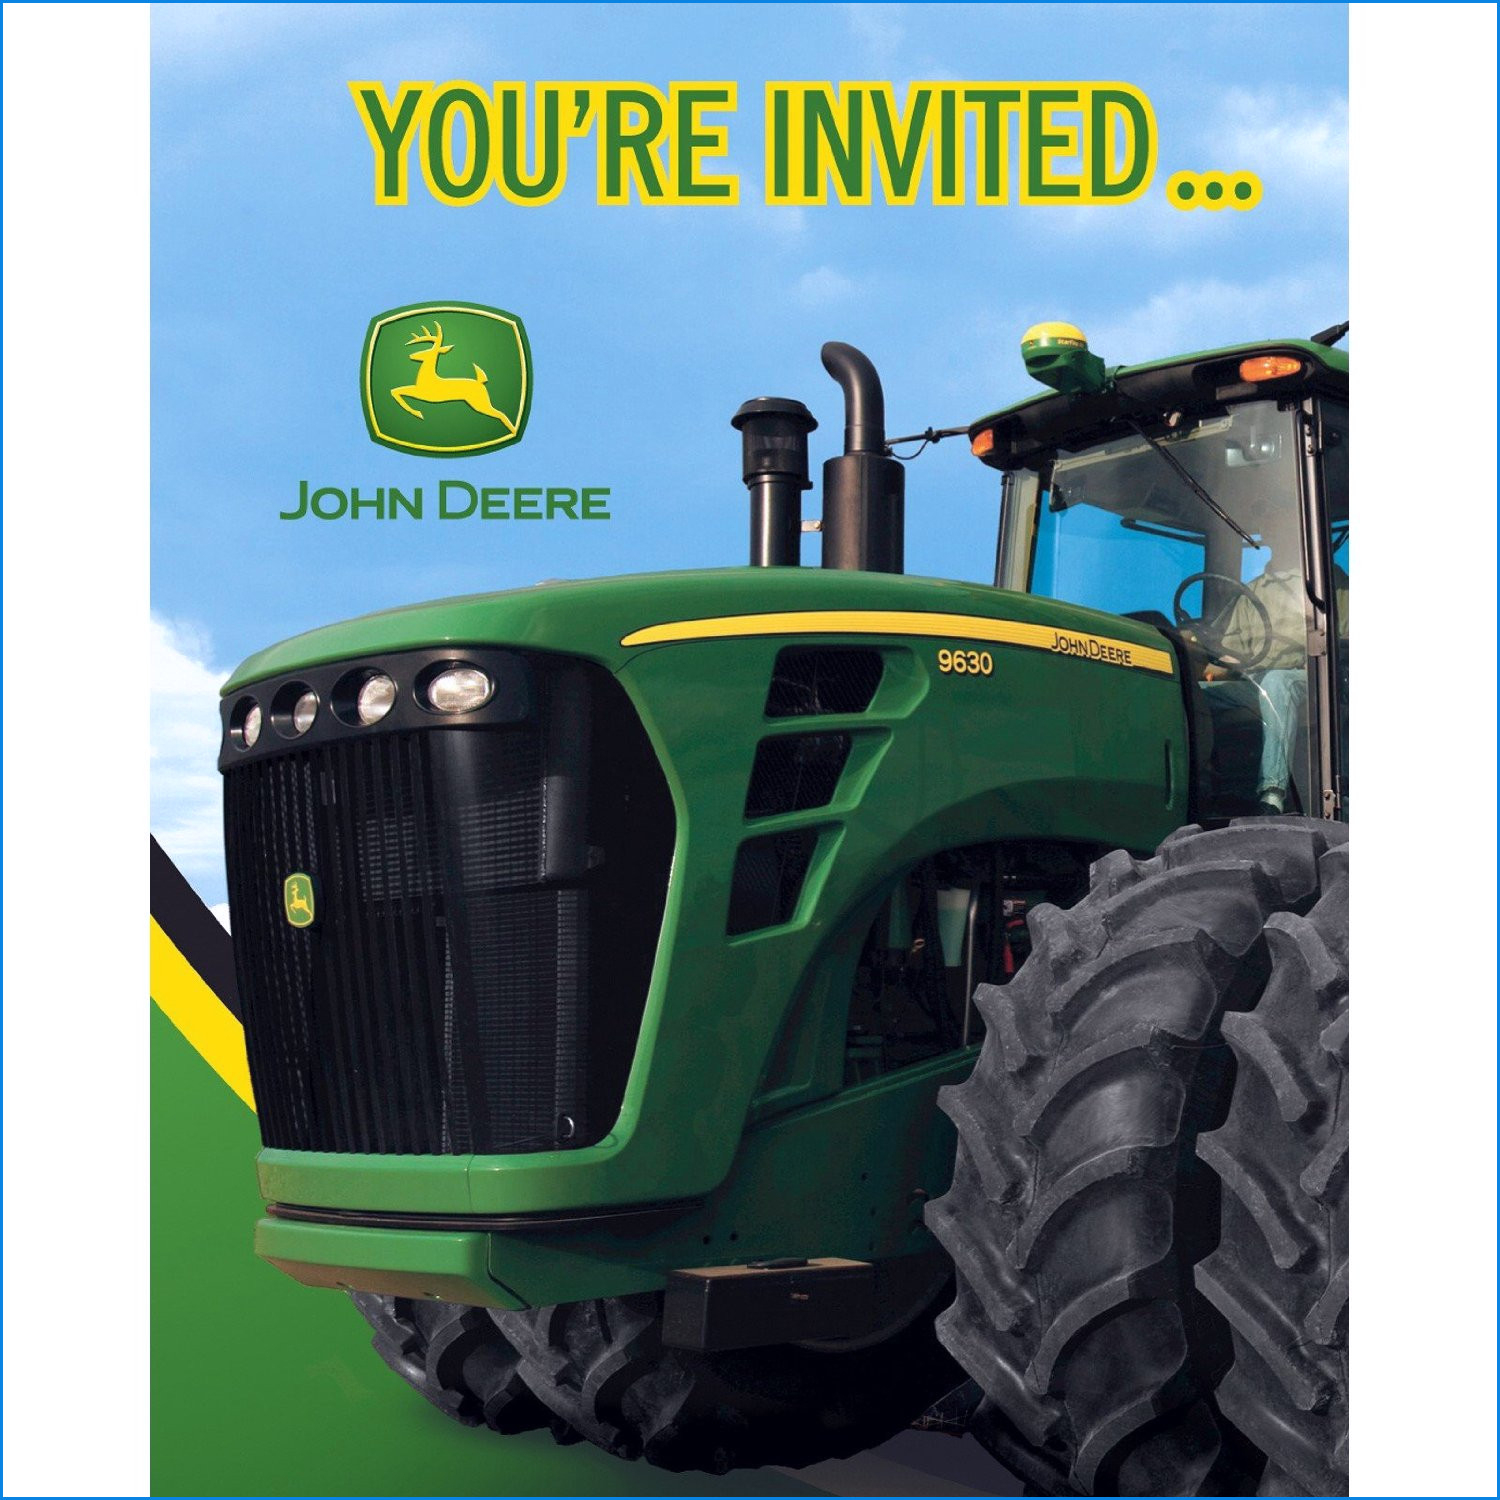 John Deere Birthday Invitations Fresh John Deere Birthday Invitation - Free Printable John Deere Birthday Invitations